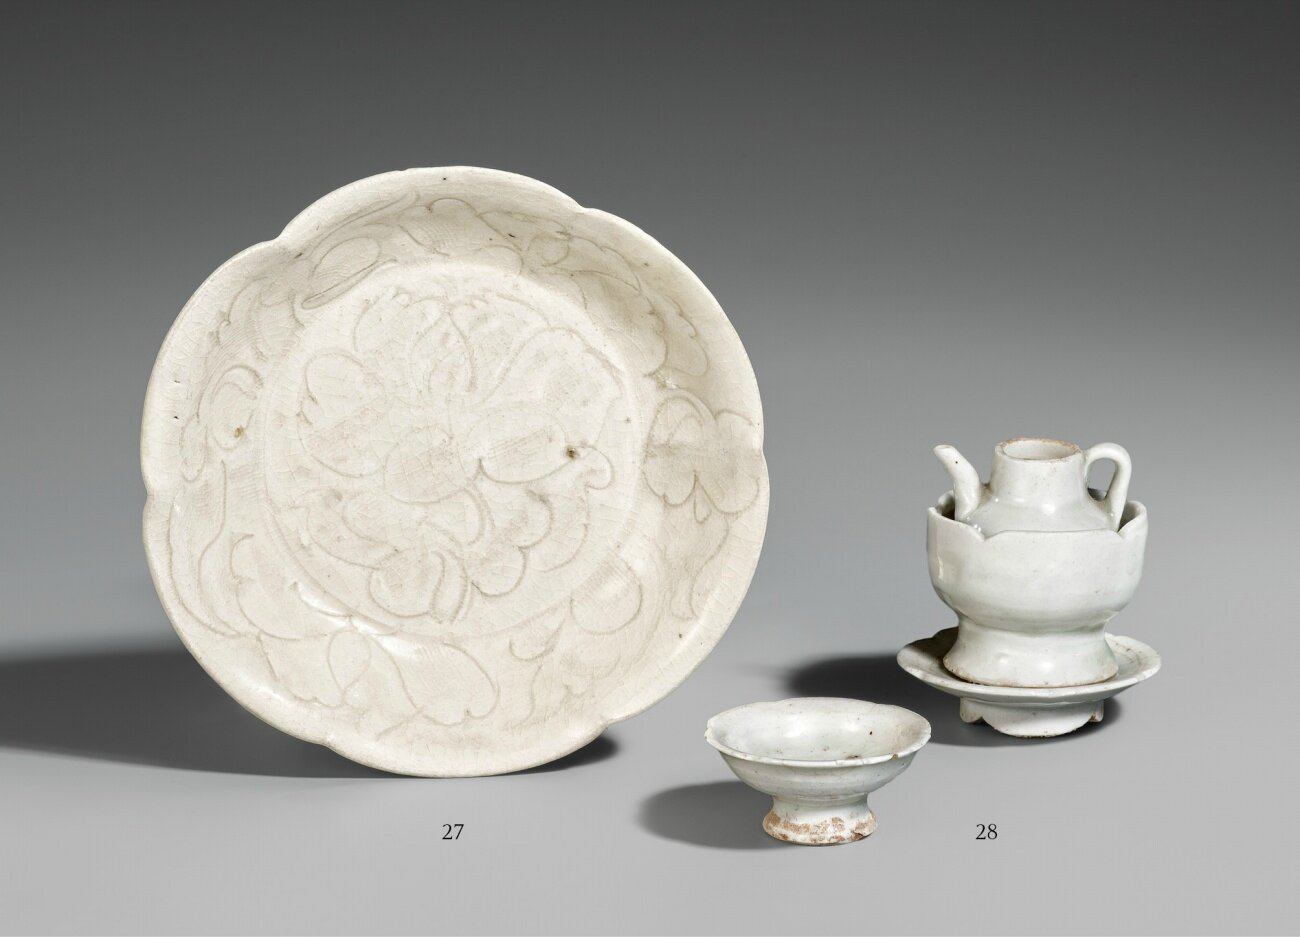 A shallow Qingbai dish. Song dynasty & A miniature Qingbai ewer, warmer, stand and a stem cup. Southern Song dynasty